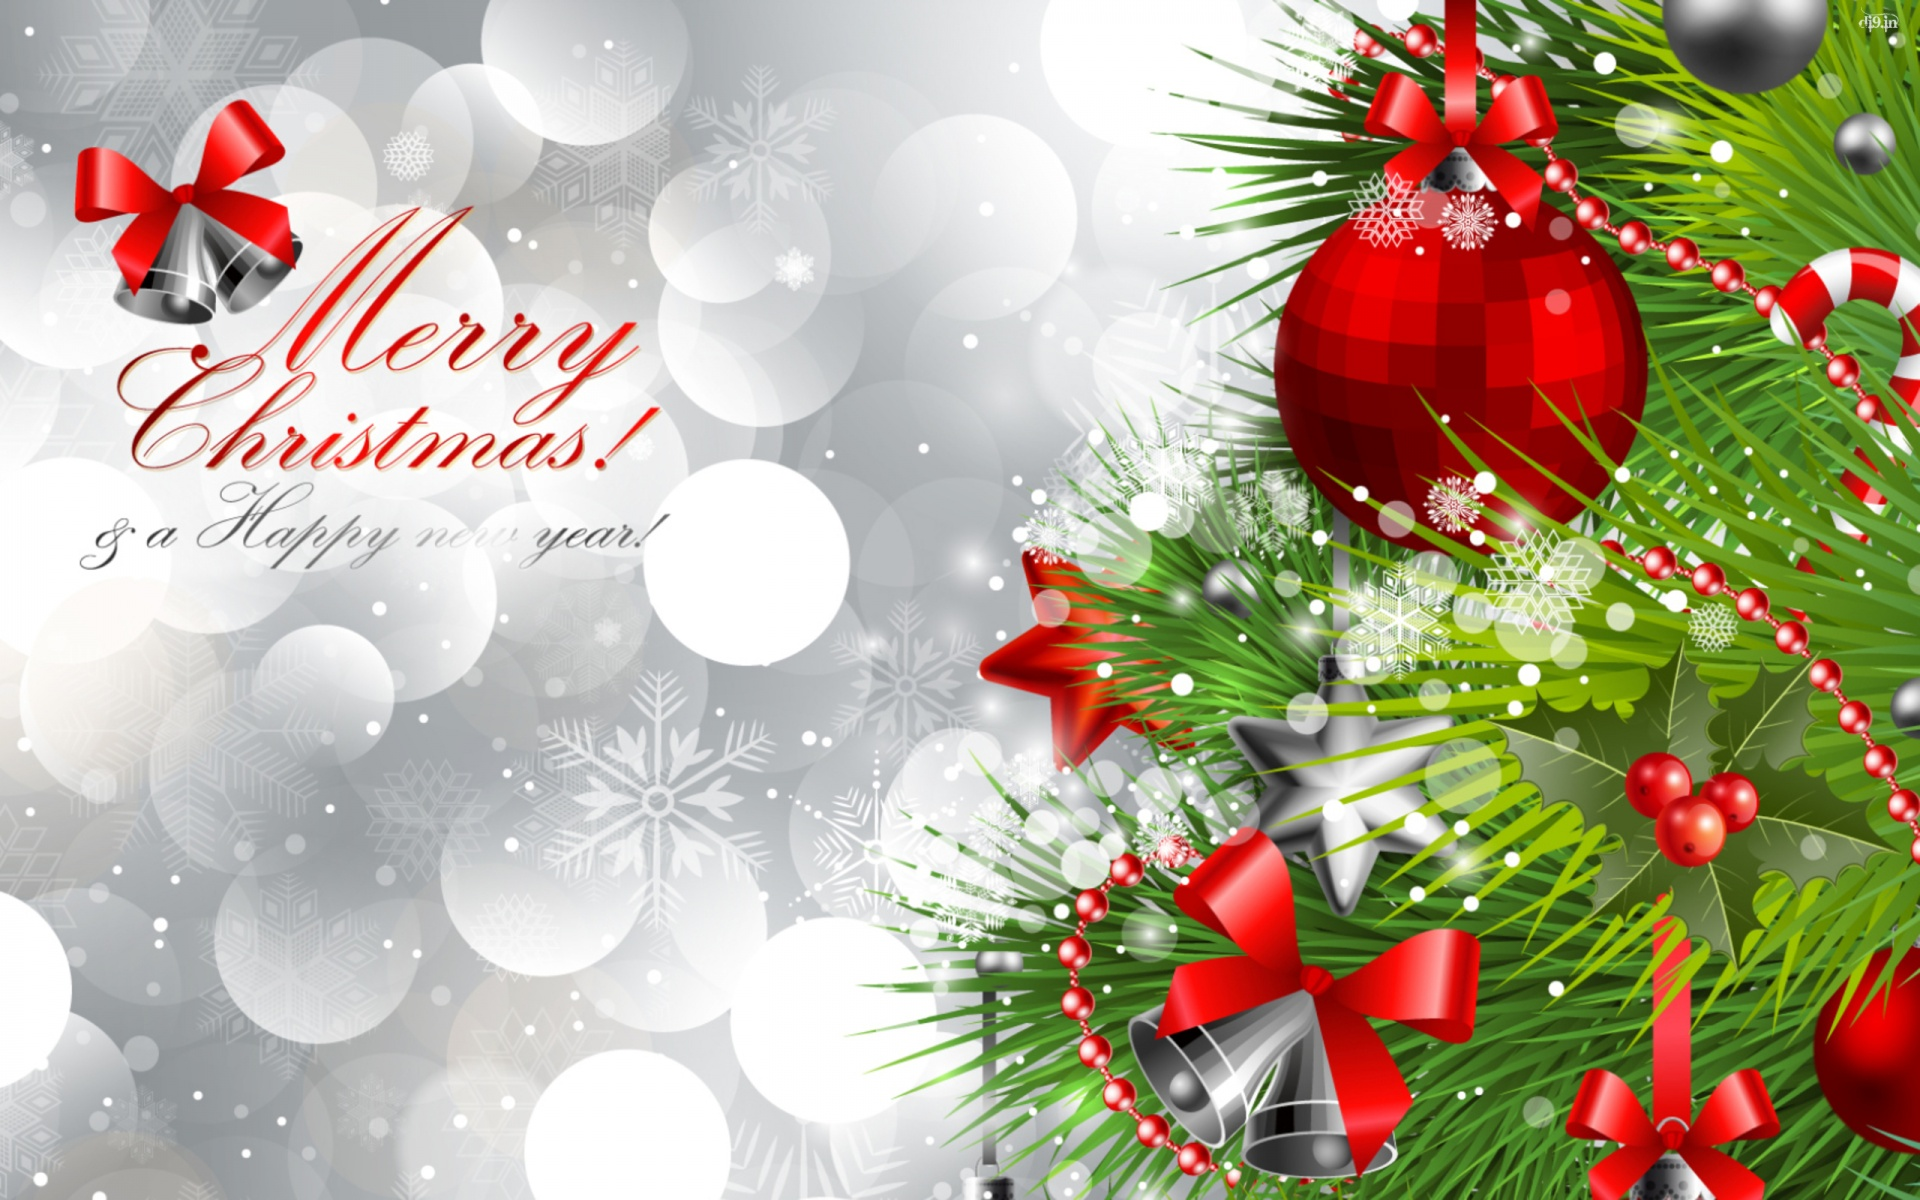 1000+ images about Merry Christmas Wallpapers on Pinterest